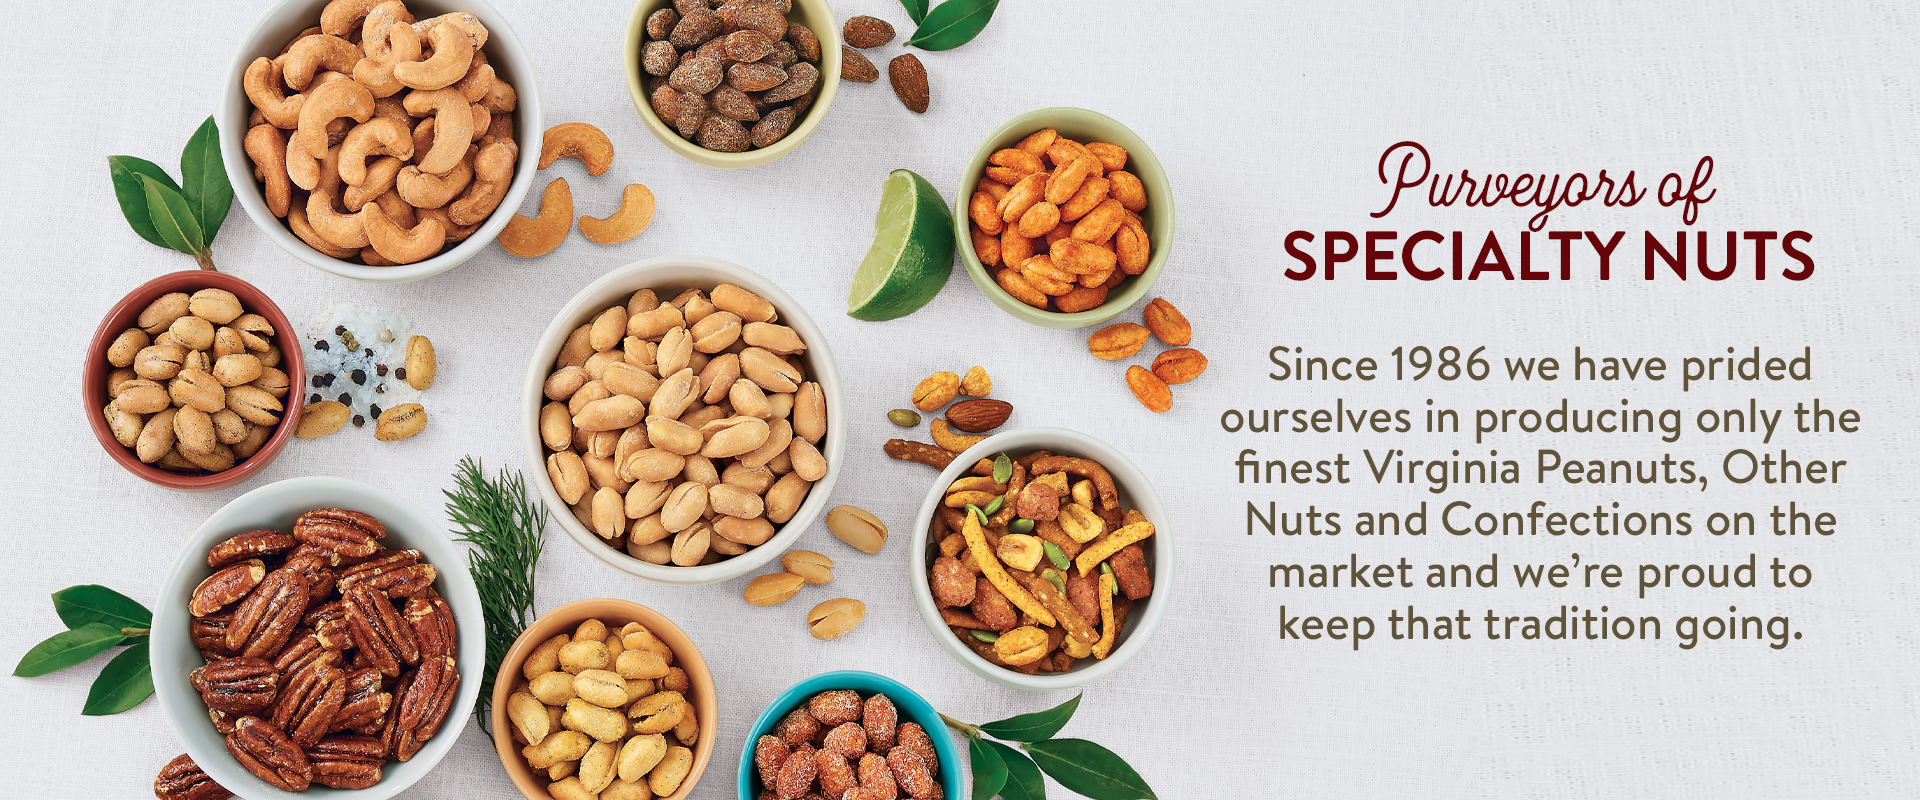 Purveyors of Specialty Nuts